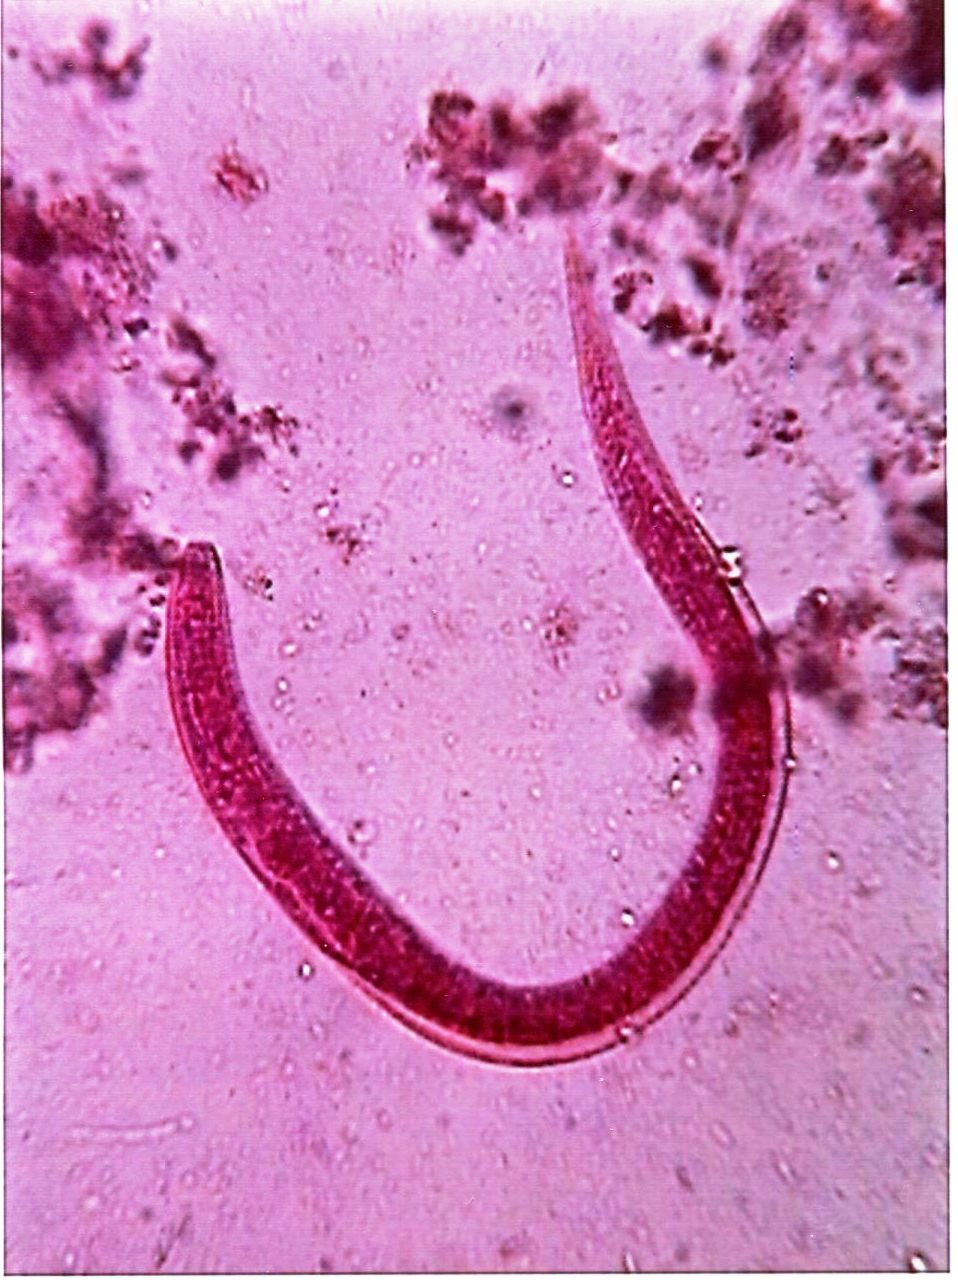 Strongyloides stercoralis (threadworm) larva : Parasitology Center